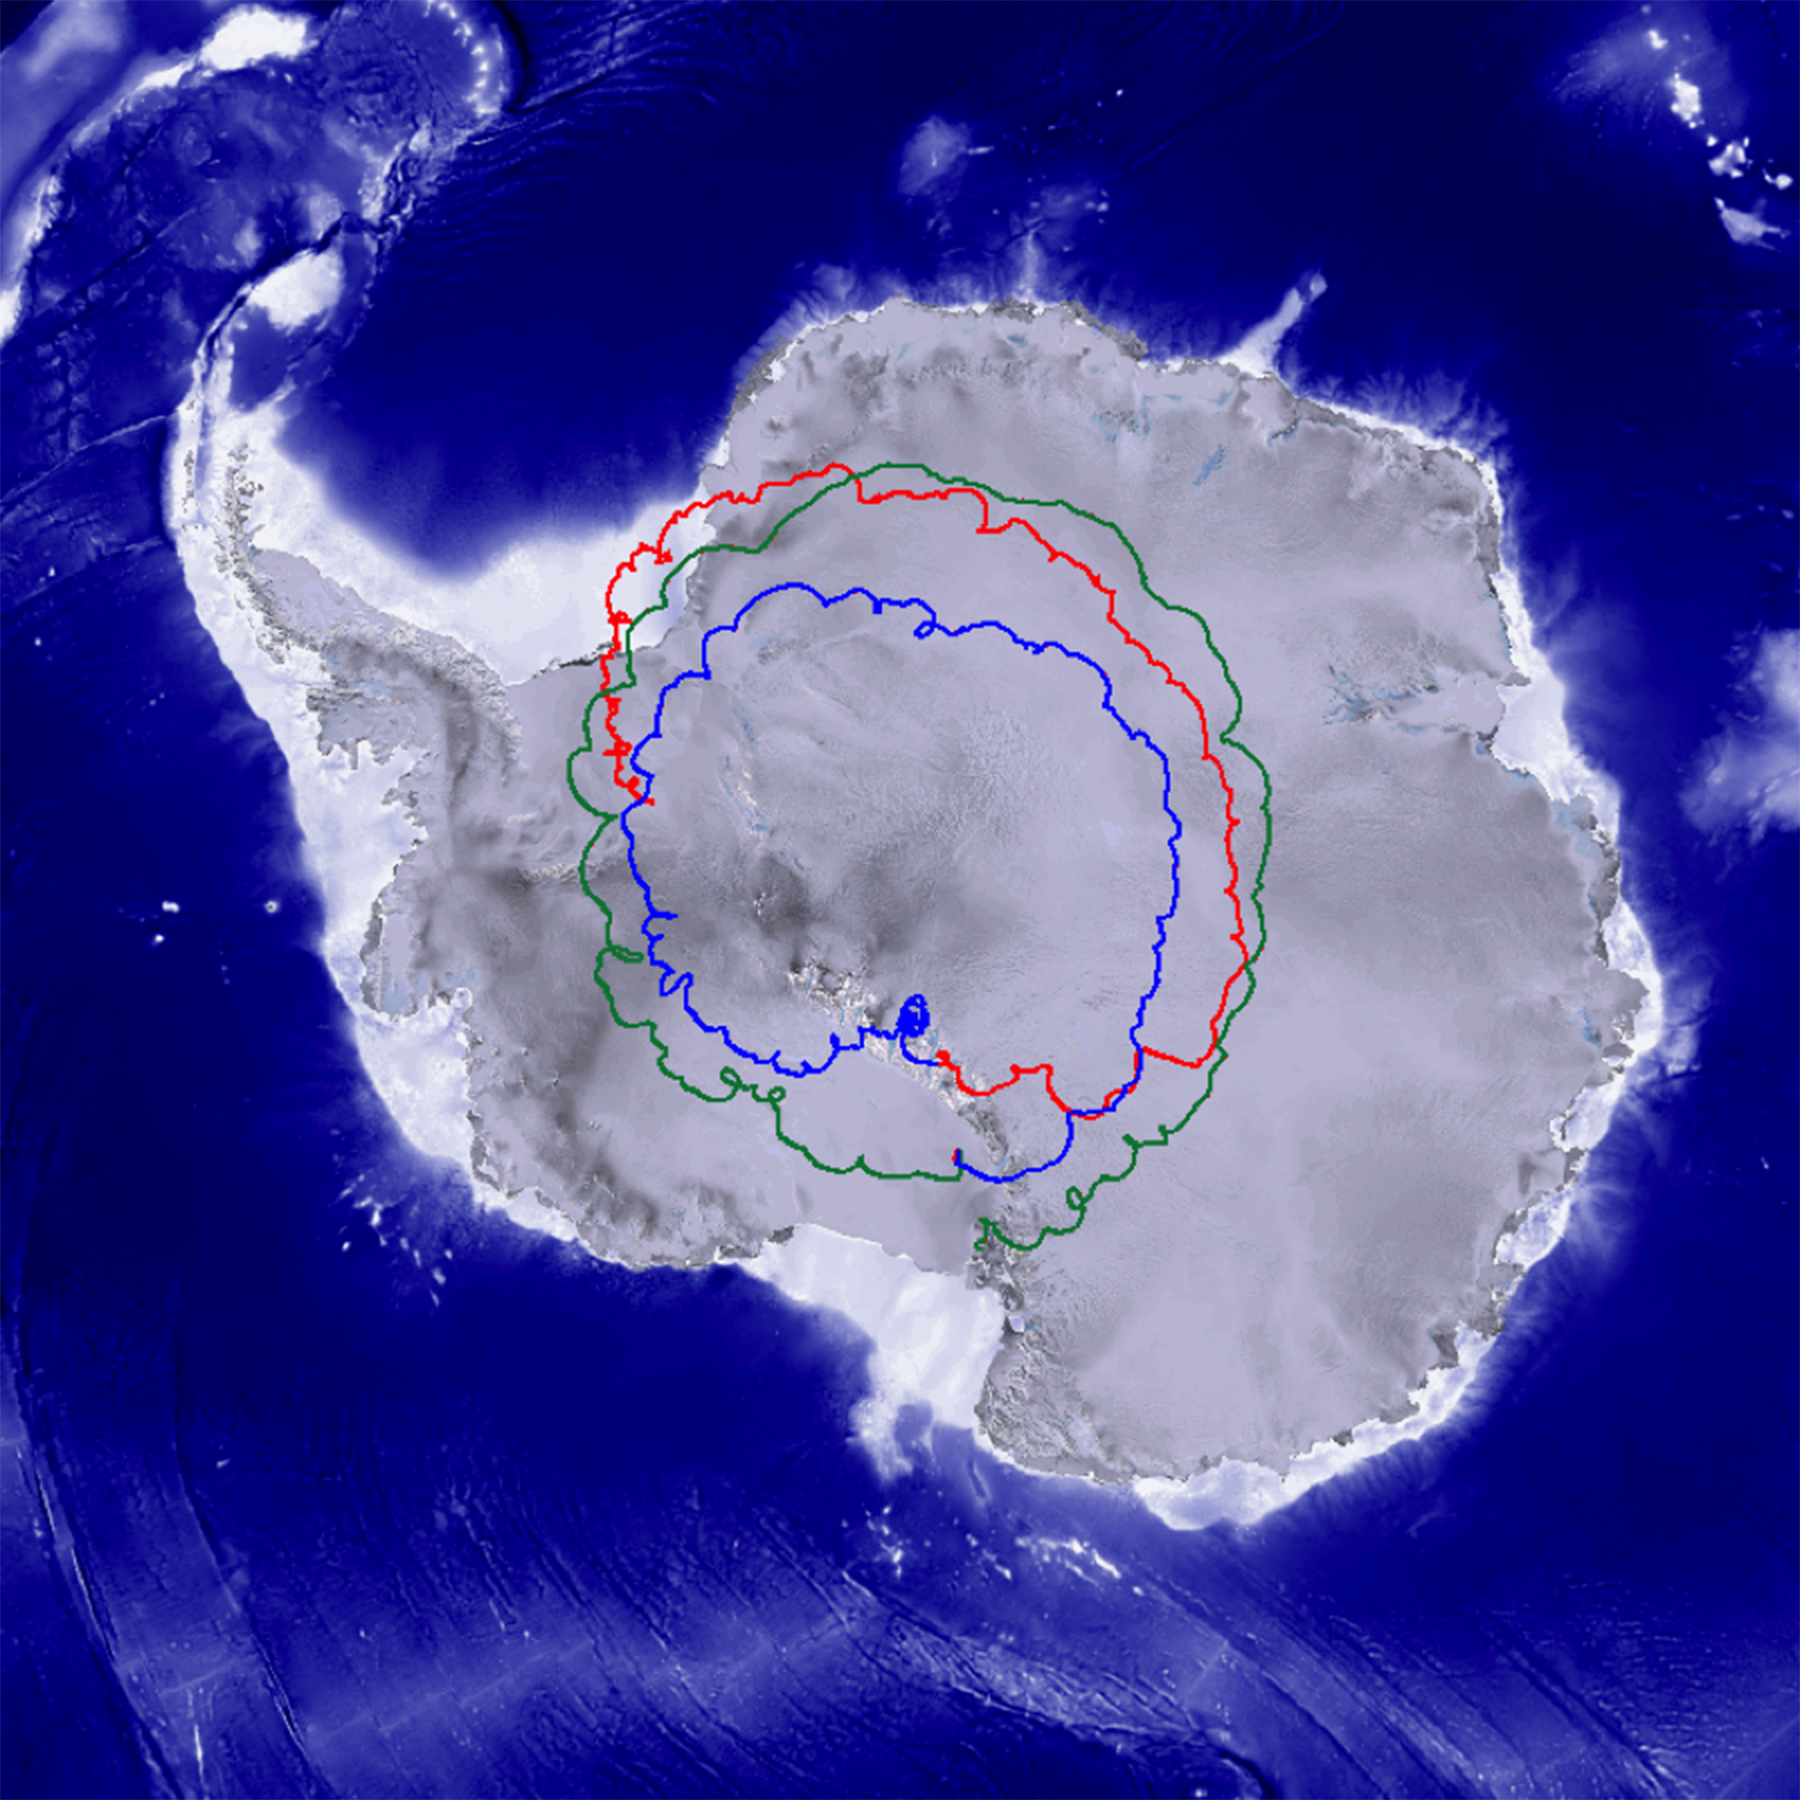 The groundtrack of the Super-TIGER mission, which flew from Antarctica during the 2012/2013 campaign, is shown here. Over the record-breaking 55 day, 1 hour and 24 minute flight, the balloon completed nearly three revolutions about the south pole due to a weather phenomena known as an anticyclone - Image Credits: NASA/file photo